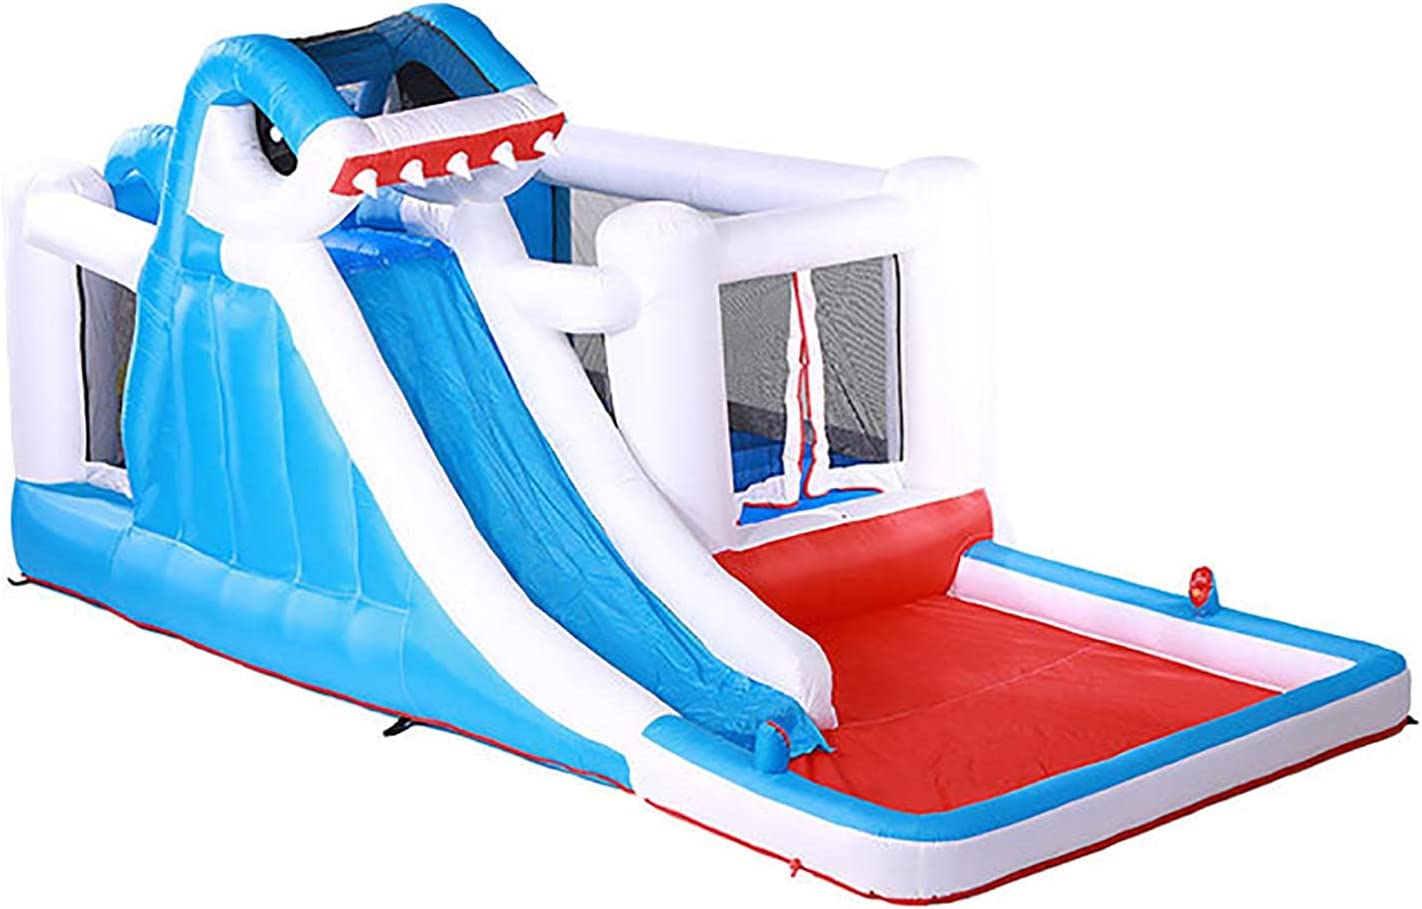 Inflatable Water Slide for unisex Household Bounce Children's Use Room Max 67% OFF